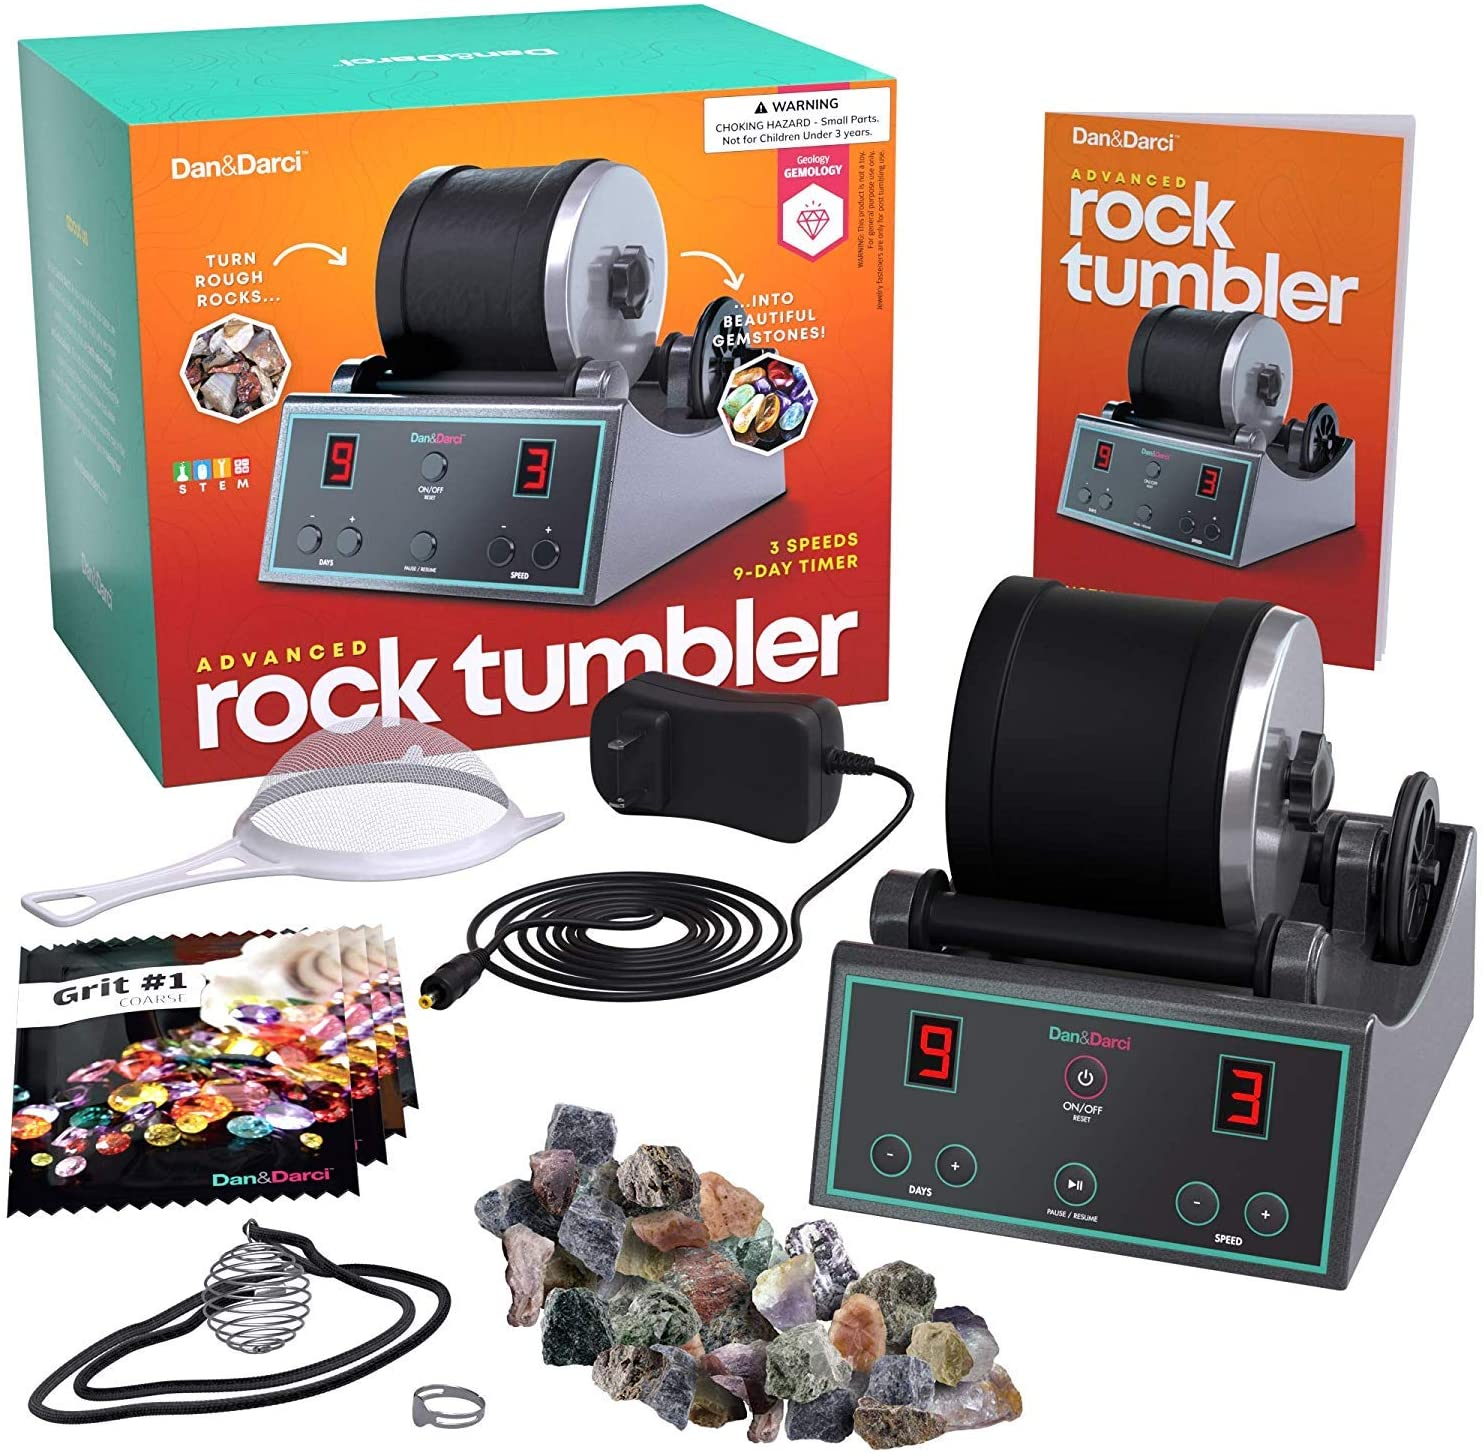 Turn Rough Rocks into Beautiful Gems with Digital 9-day timer and 3-speed settings Advanced Professional Rock Tumbler Kit Great Science Kit /& STEM Gift for all ages Study Geology /& Mineralogy